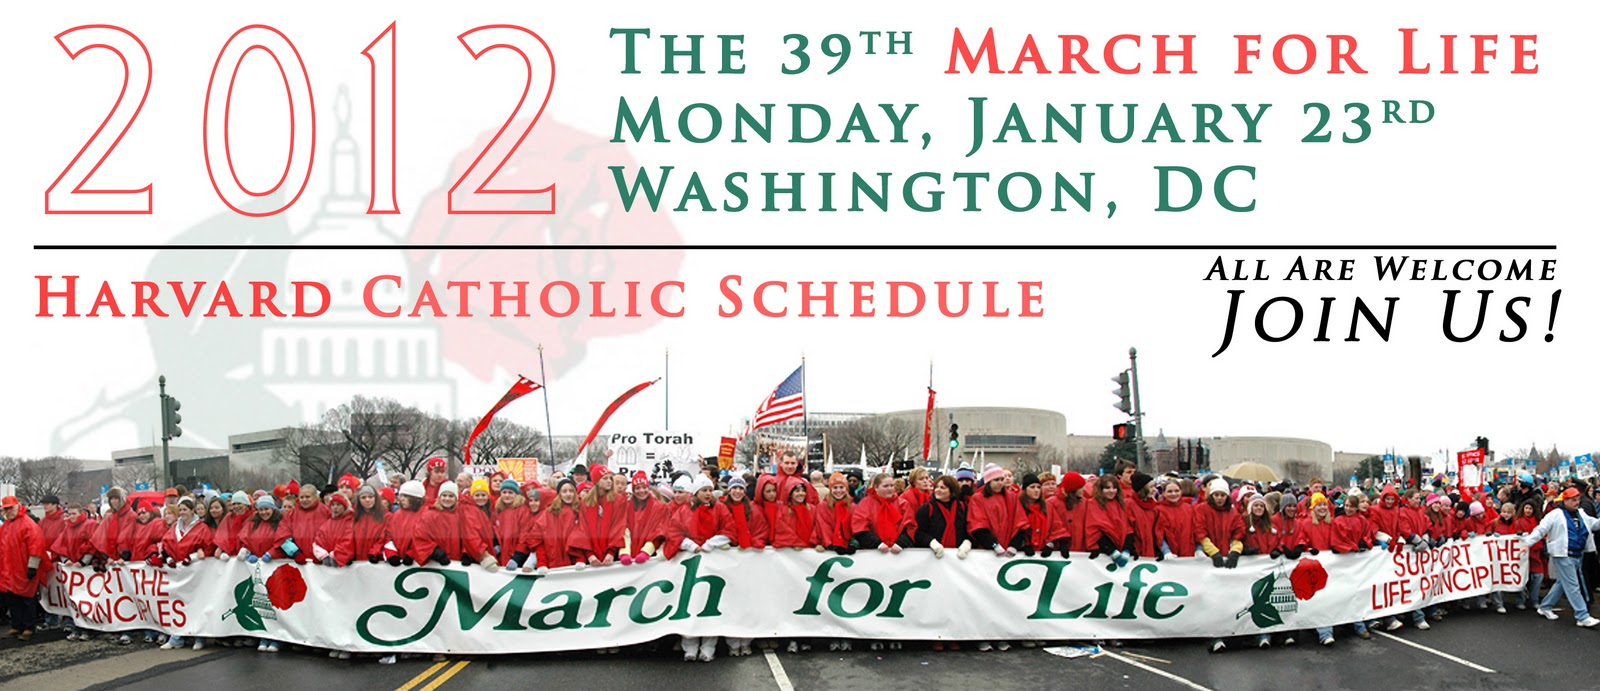 st  paul u0026 39 s church pro-life  u0026 family committee  1  22-1  24  2012  march for life